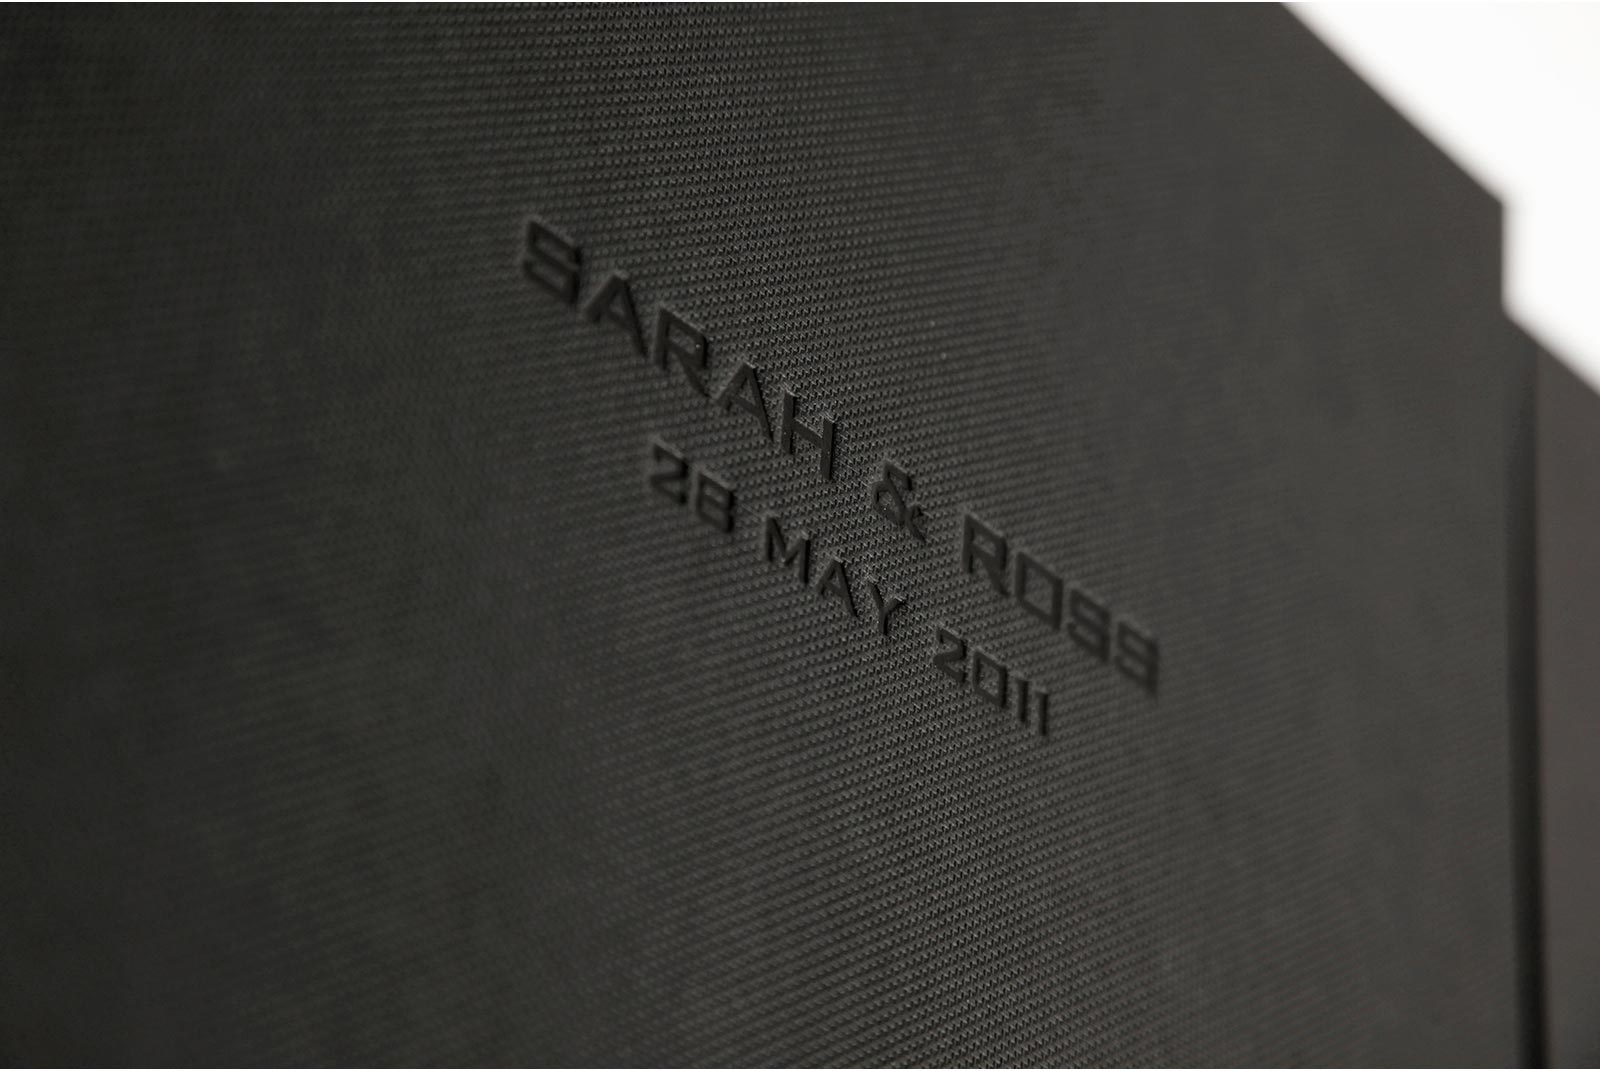 Wedding album with embossed names